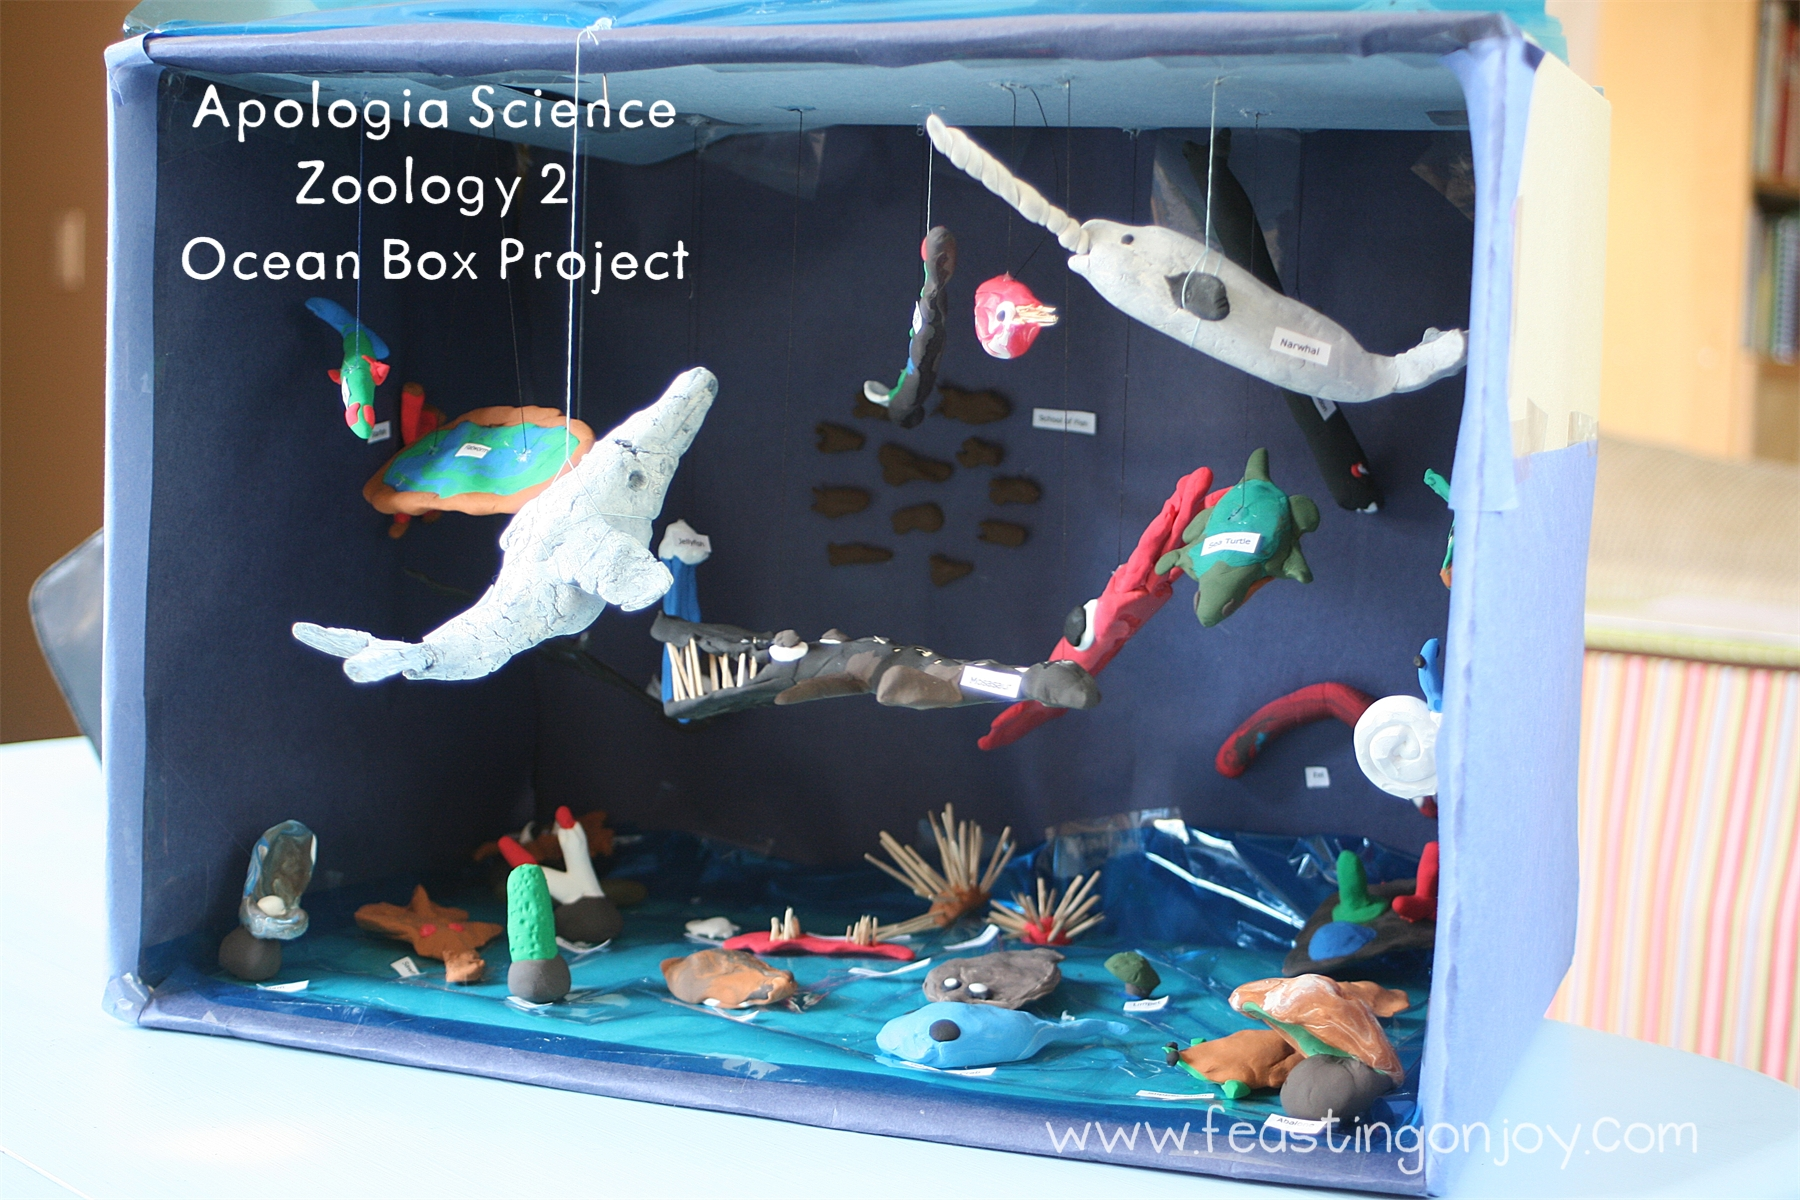 Apologia Science~ Zoology 2 Ocean Box Project